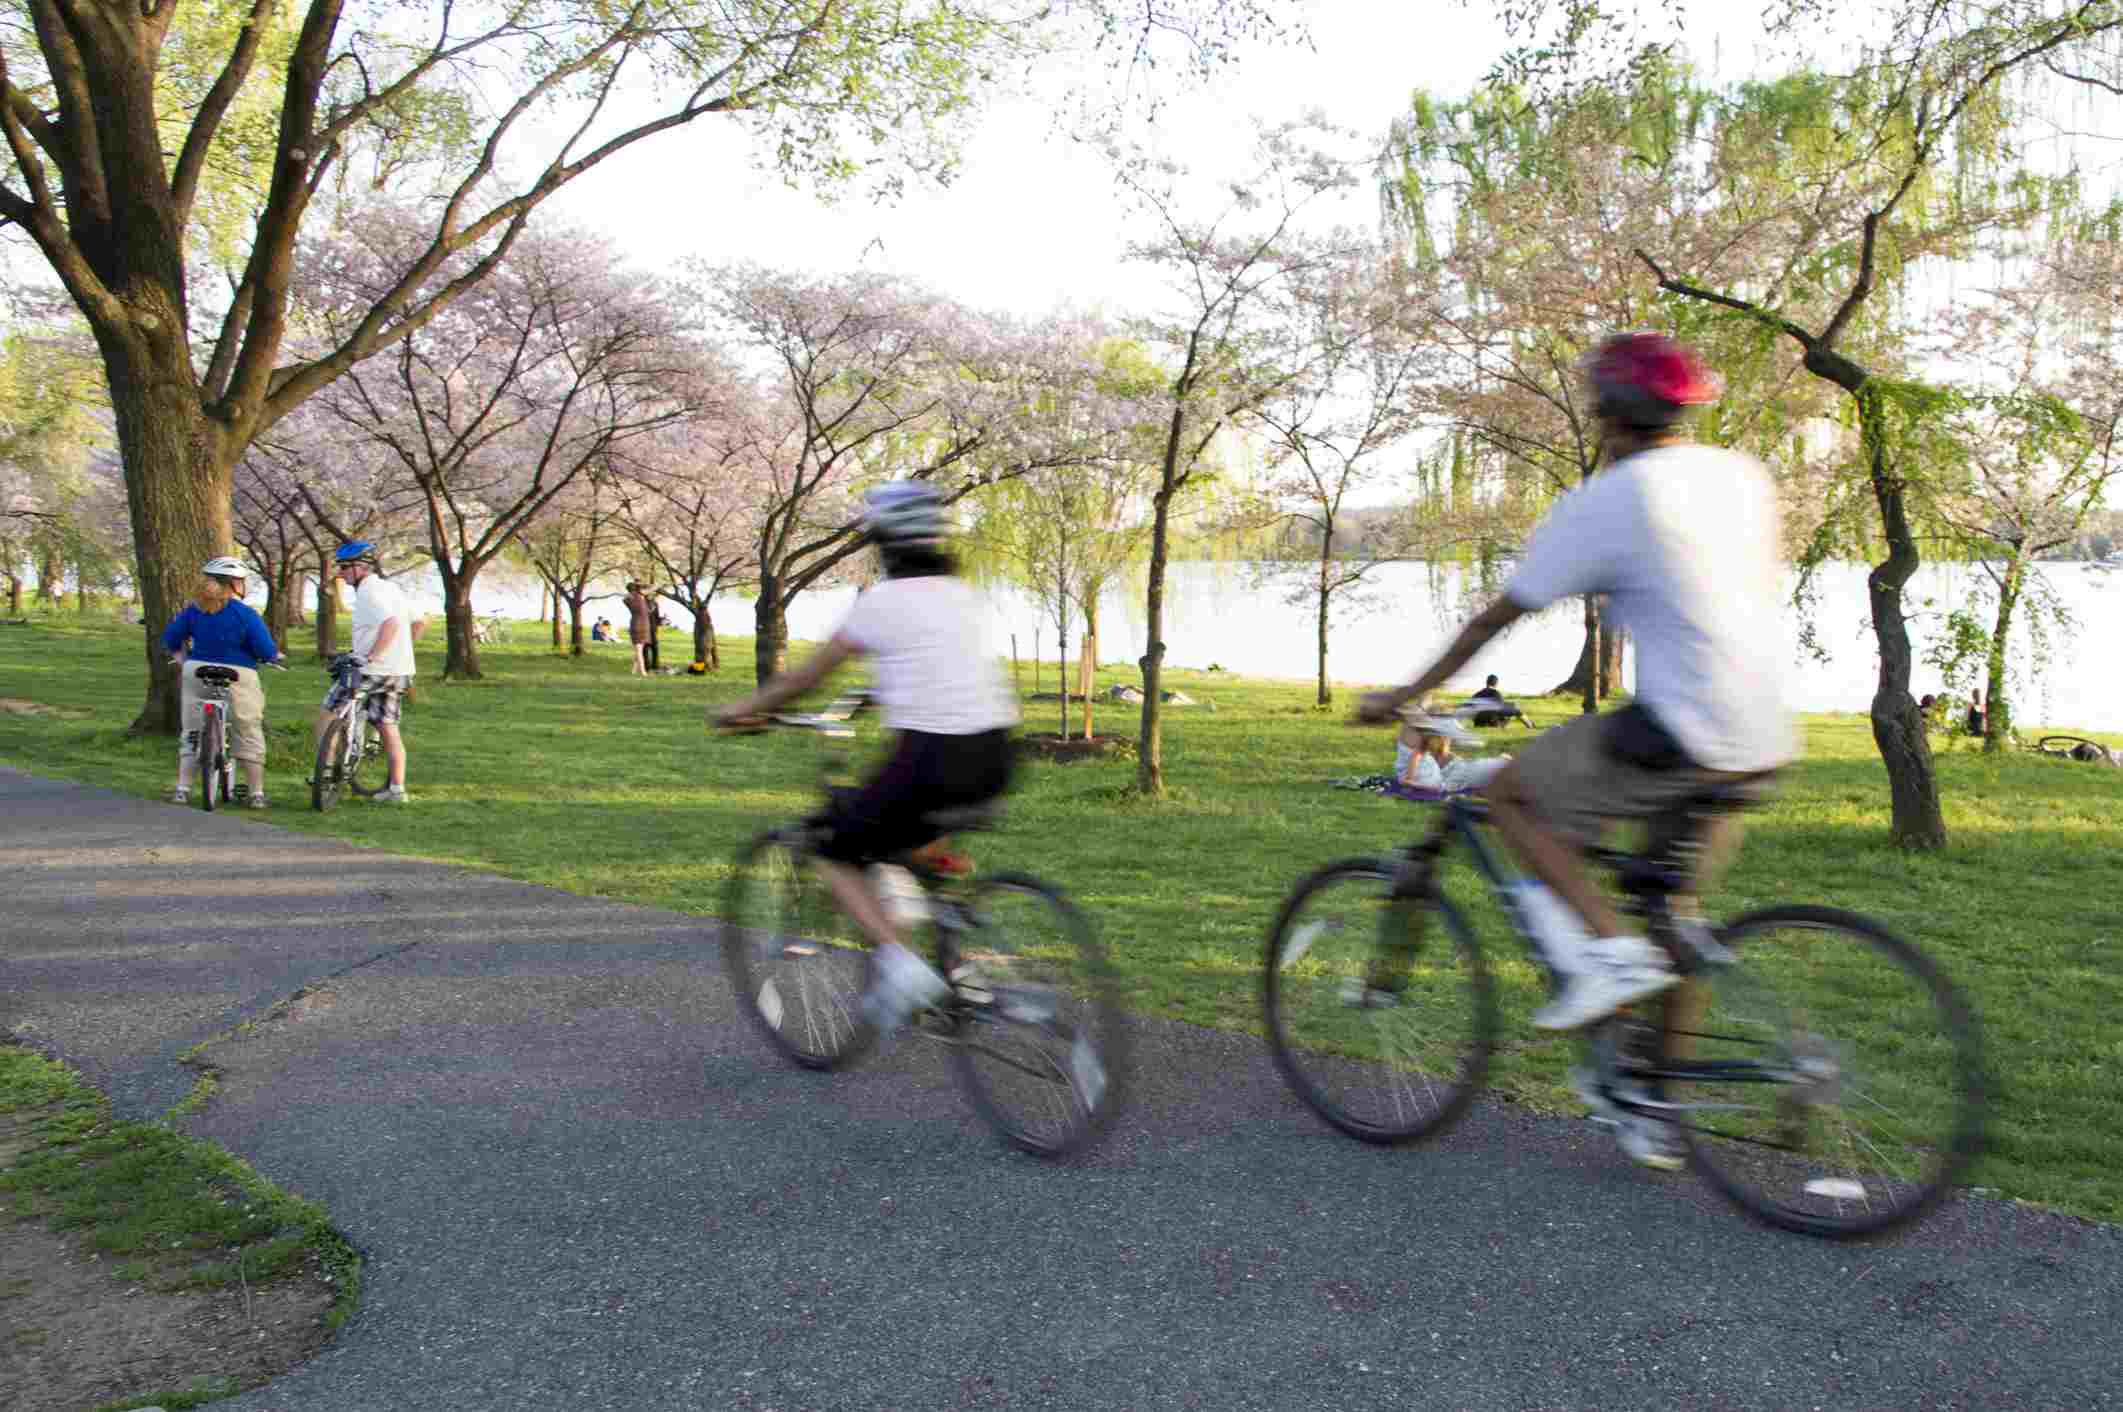 Ciclismo en West Potomac Park, Washington DC